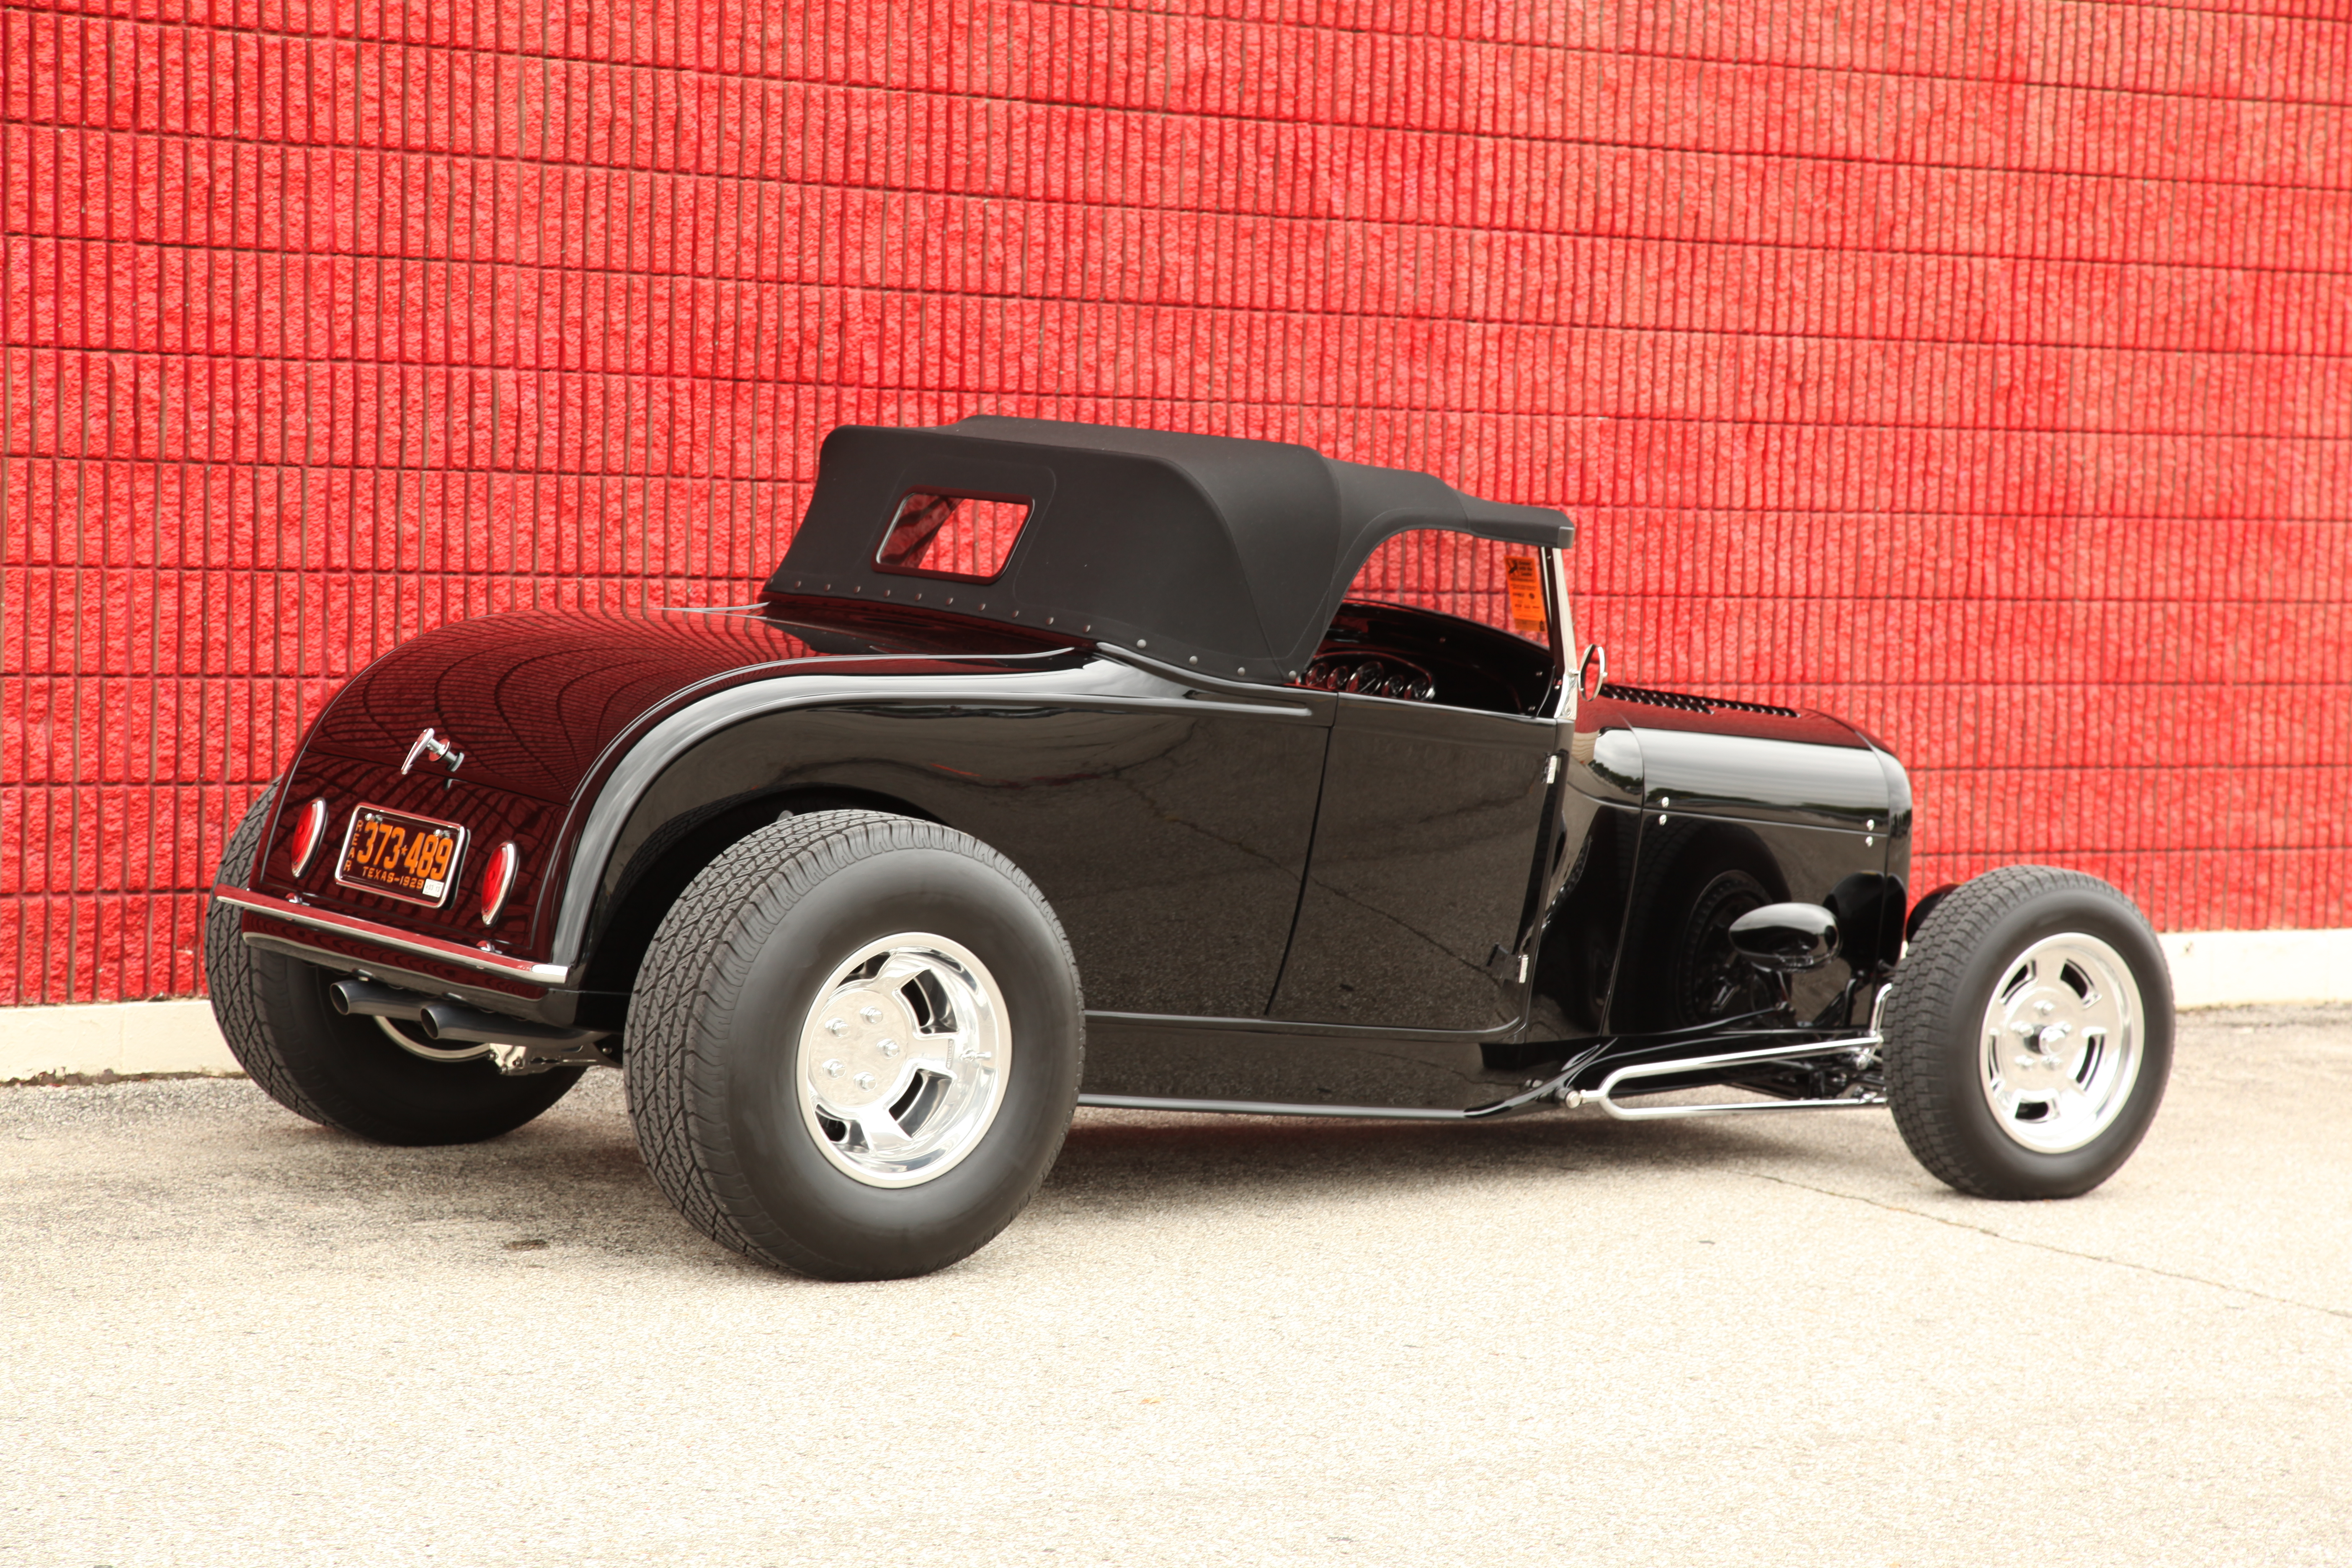 1929 Ford Roadster Backgrounds on Wallpapers Vista